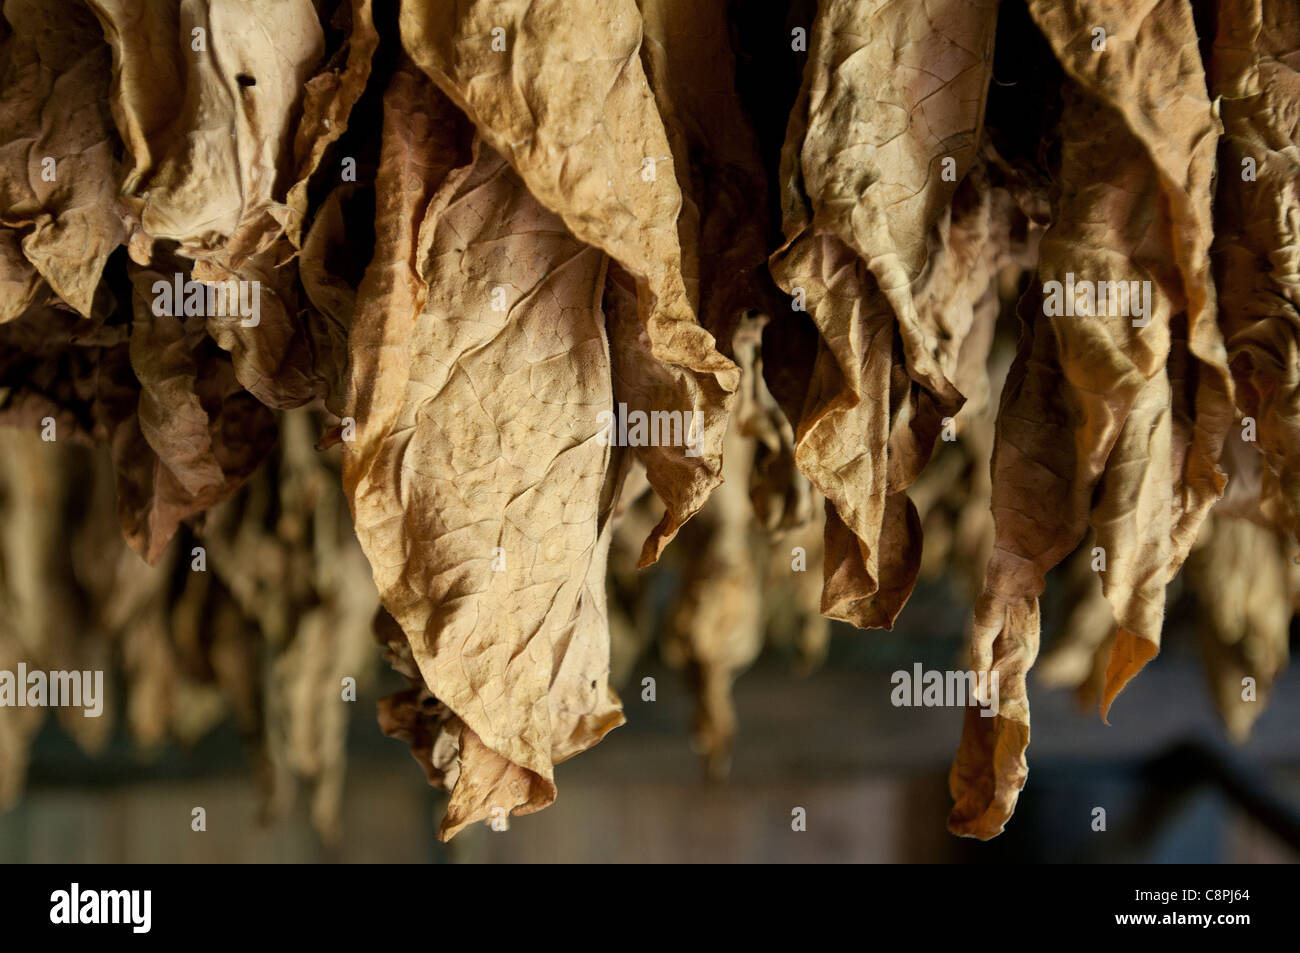 Cuban tobacco leaves drying in barn, Vinales, Cuba - Stock Image